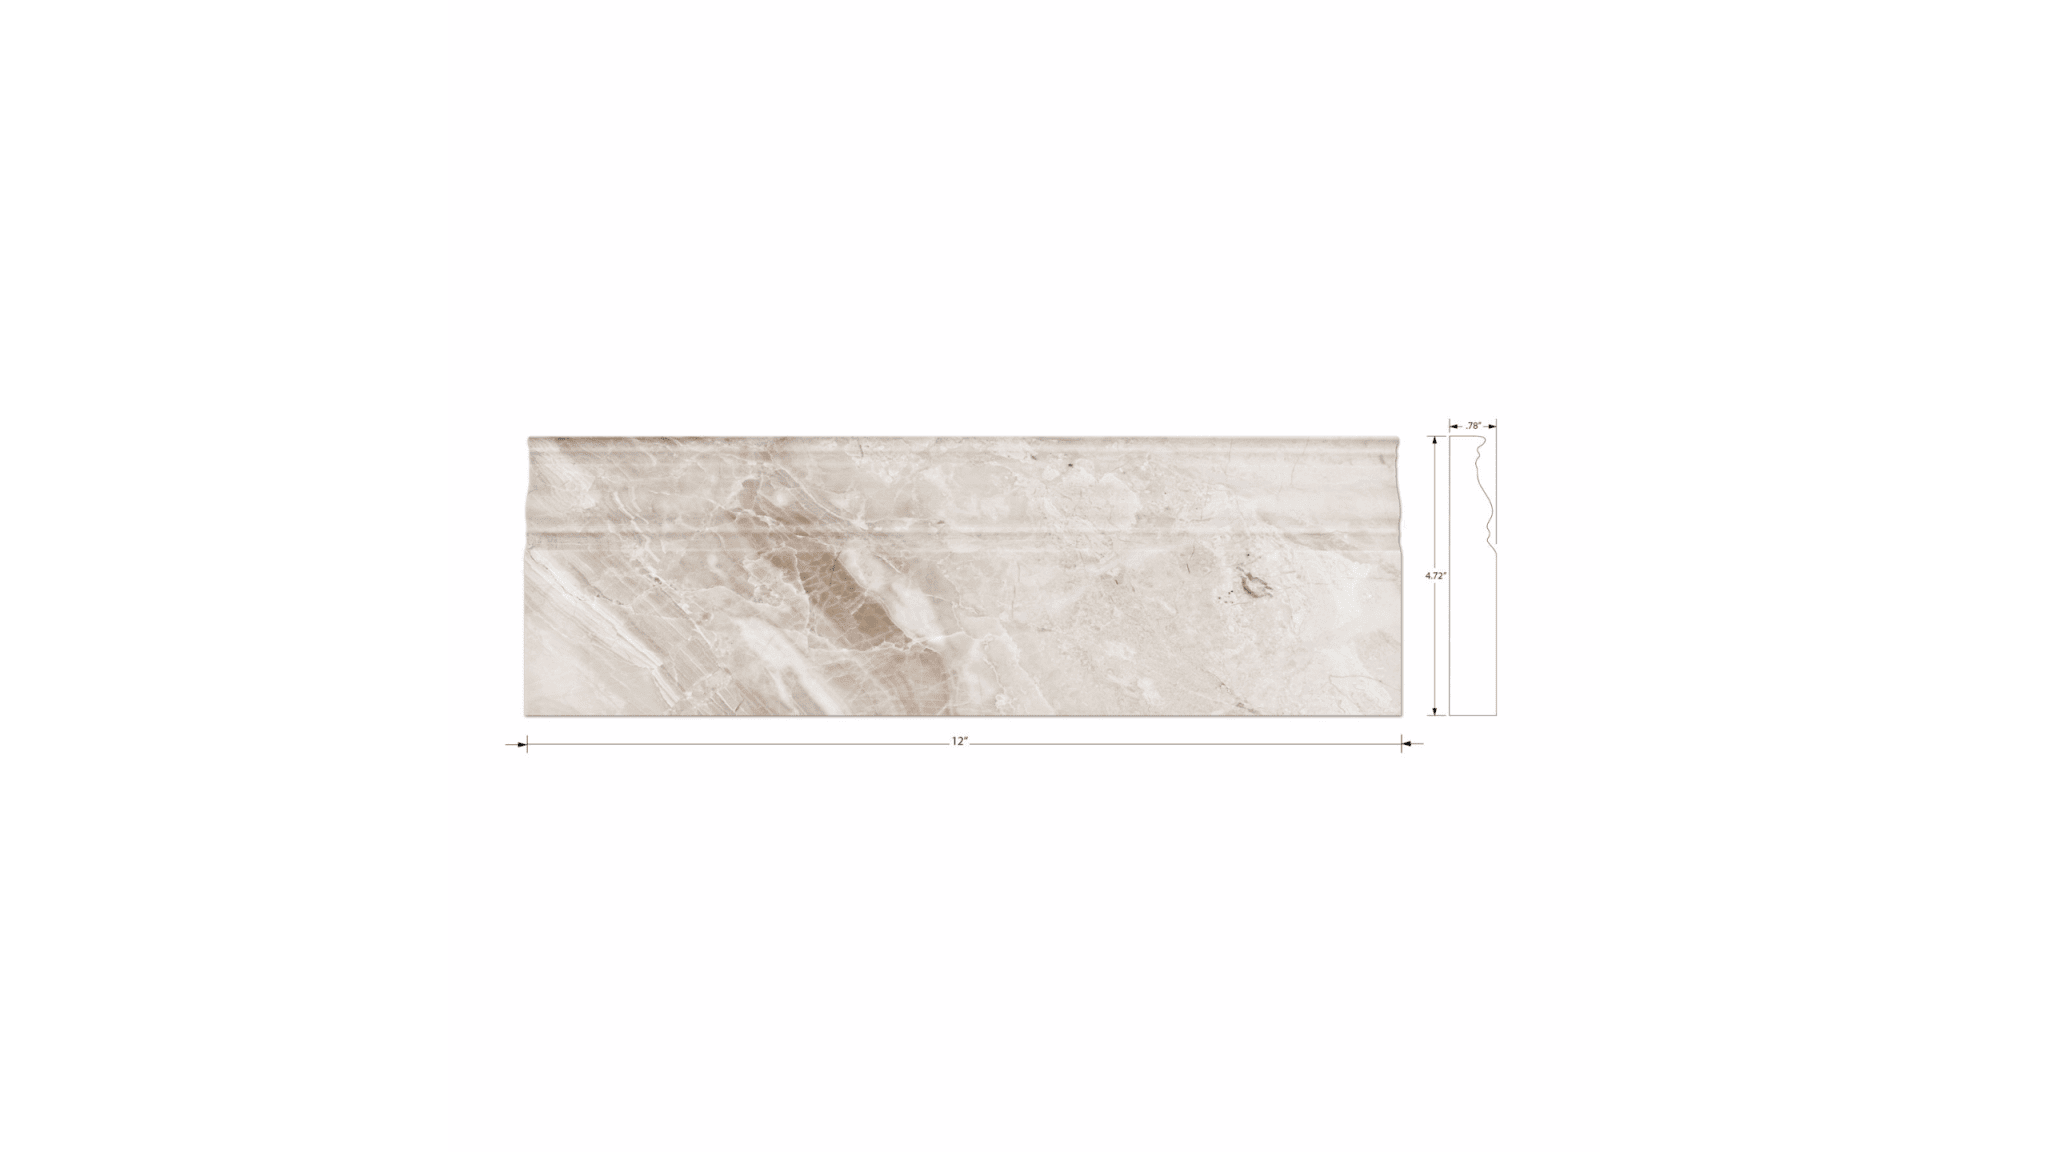 Queen Beige Polished Marble Skirting Floor Tile 475x12 In